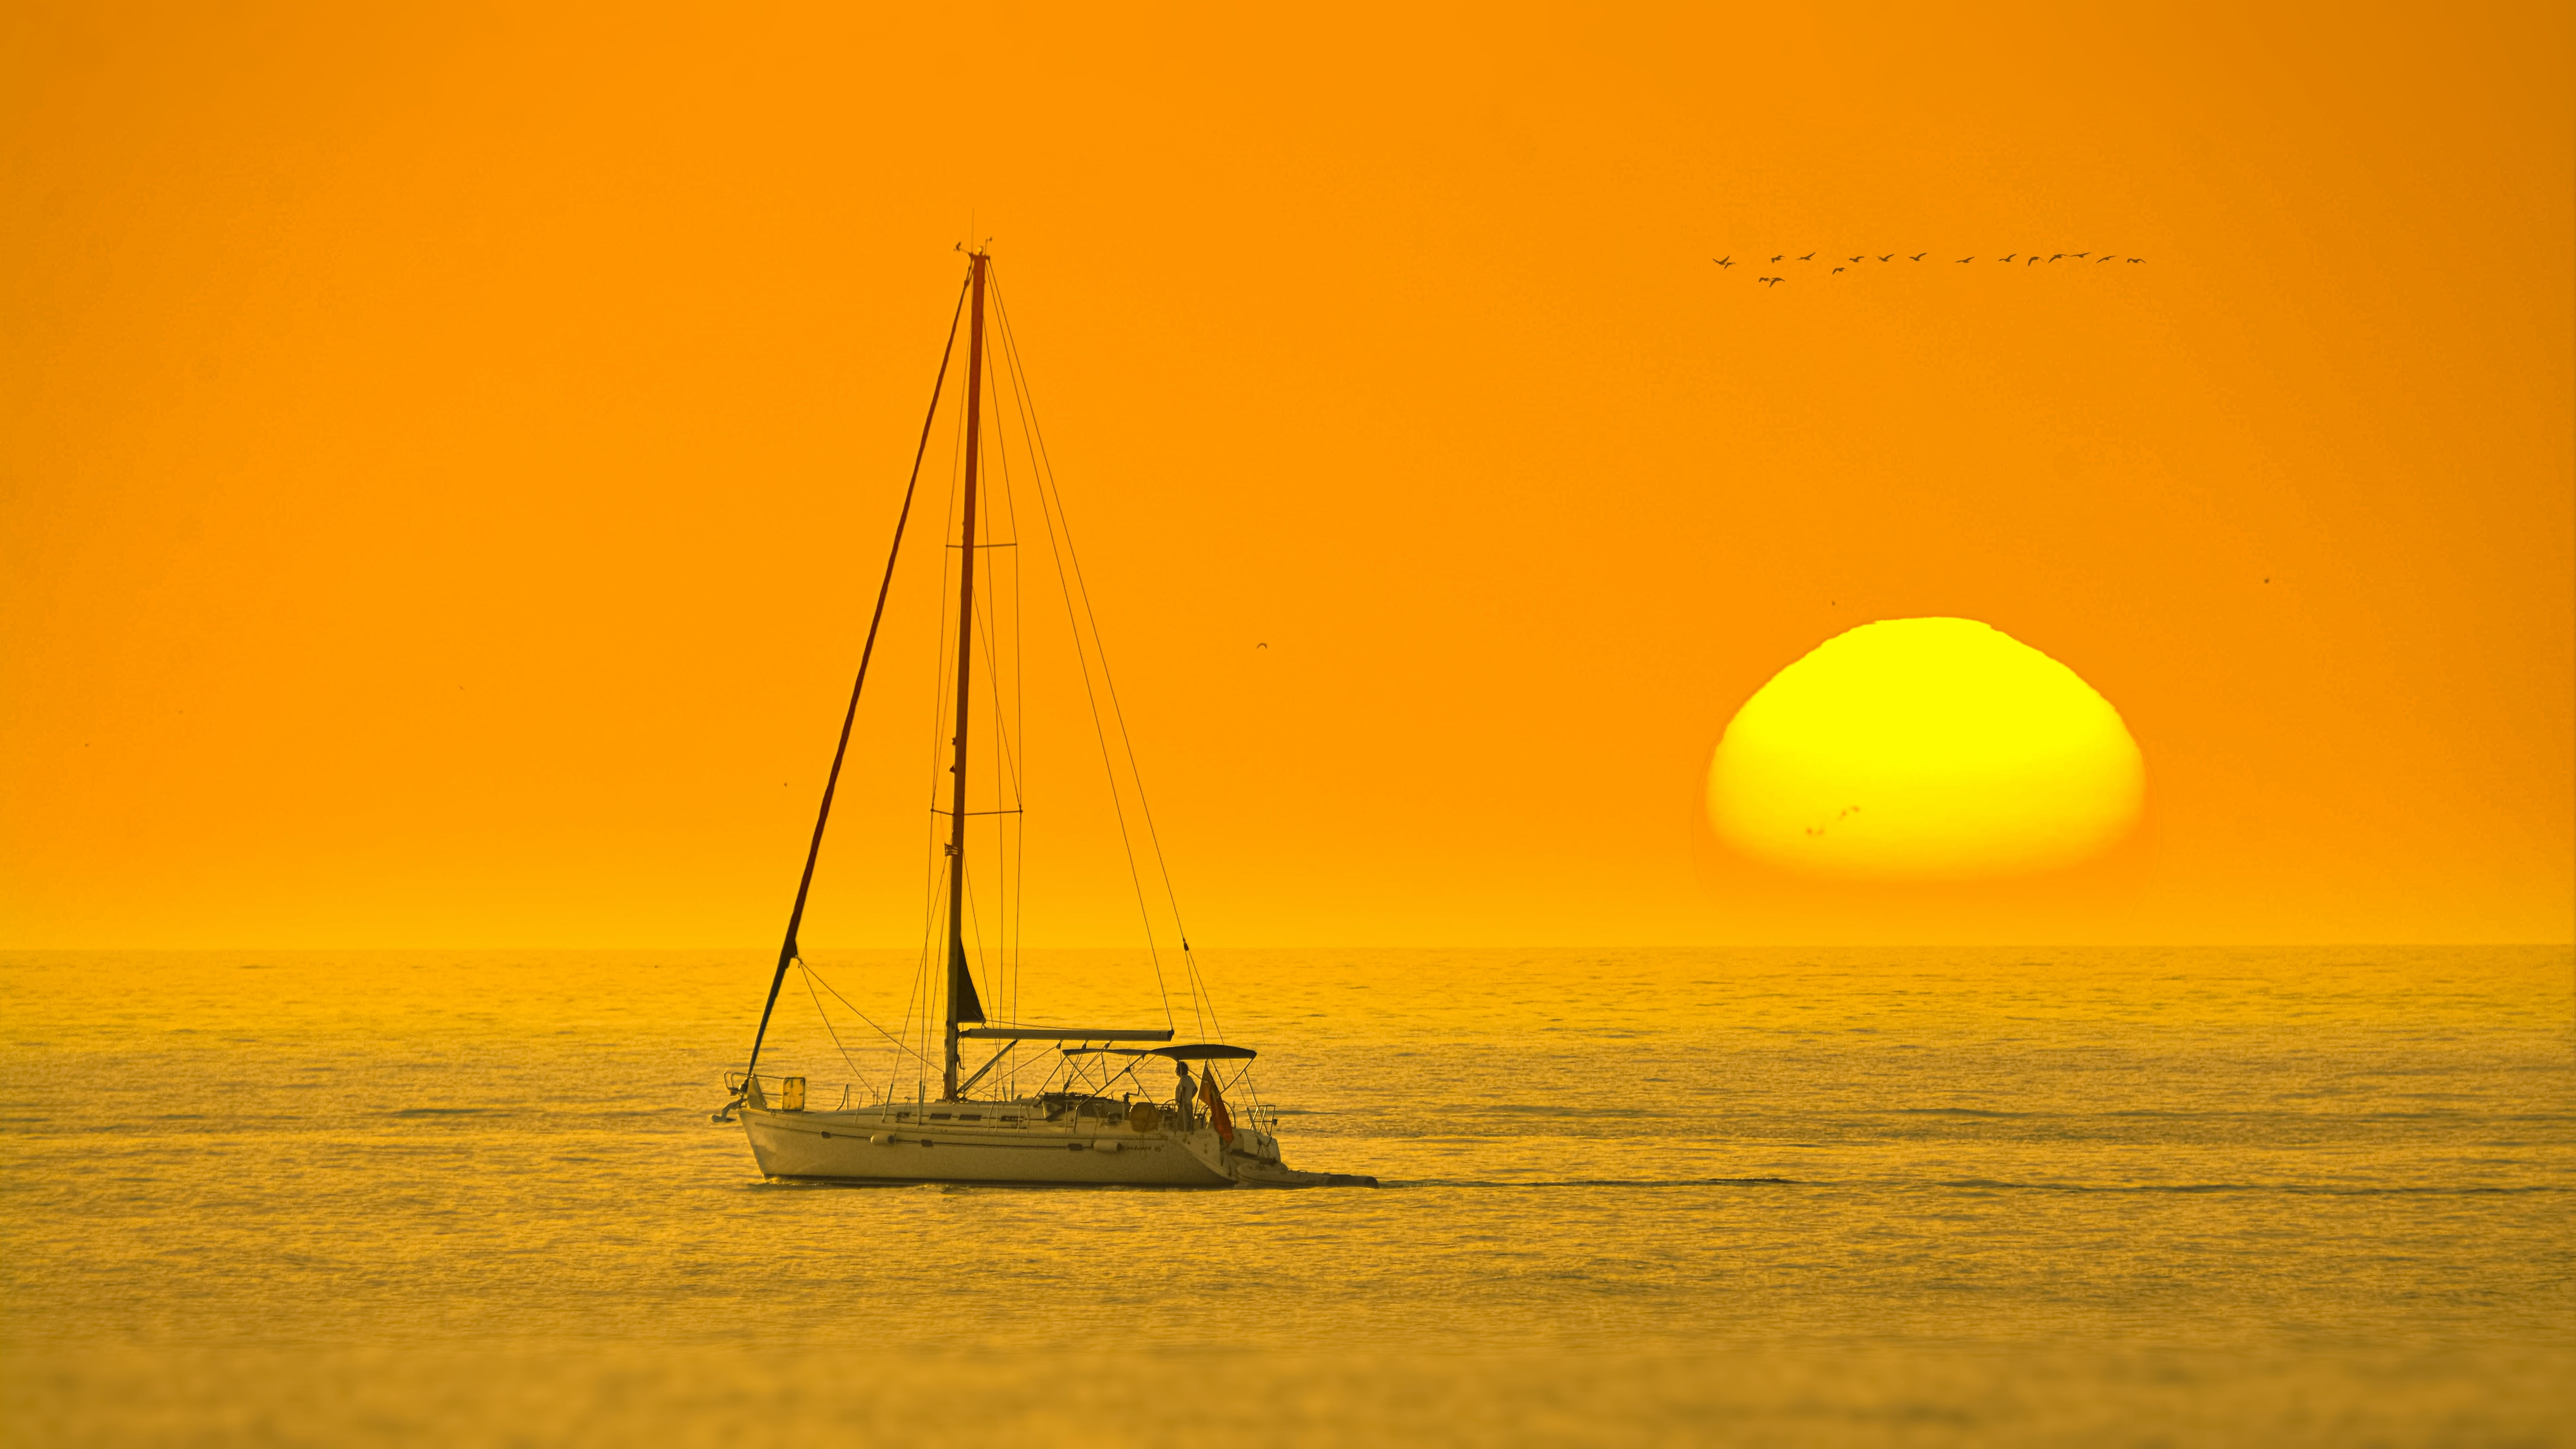 White Boat In The Middle Of The Sea During Sunset